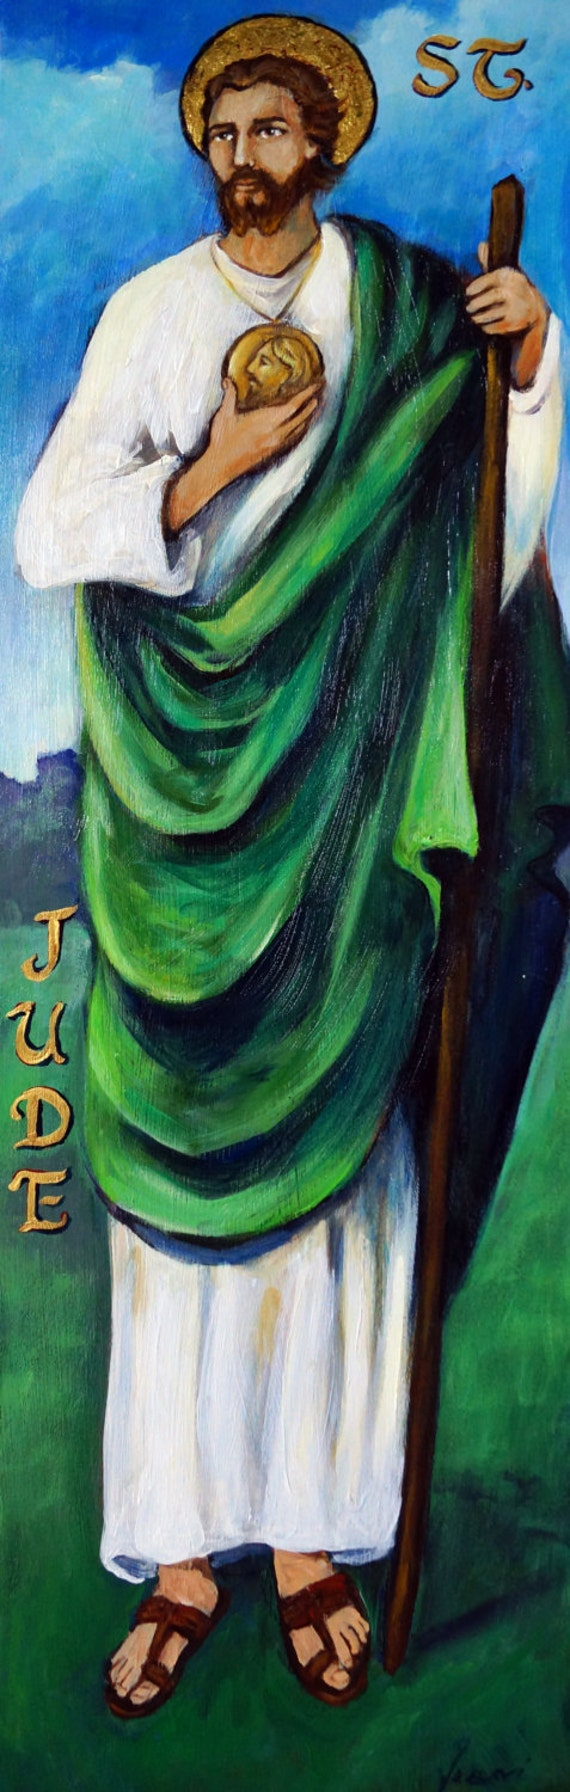 St. Jude, limited edition giclee